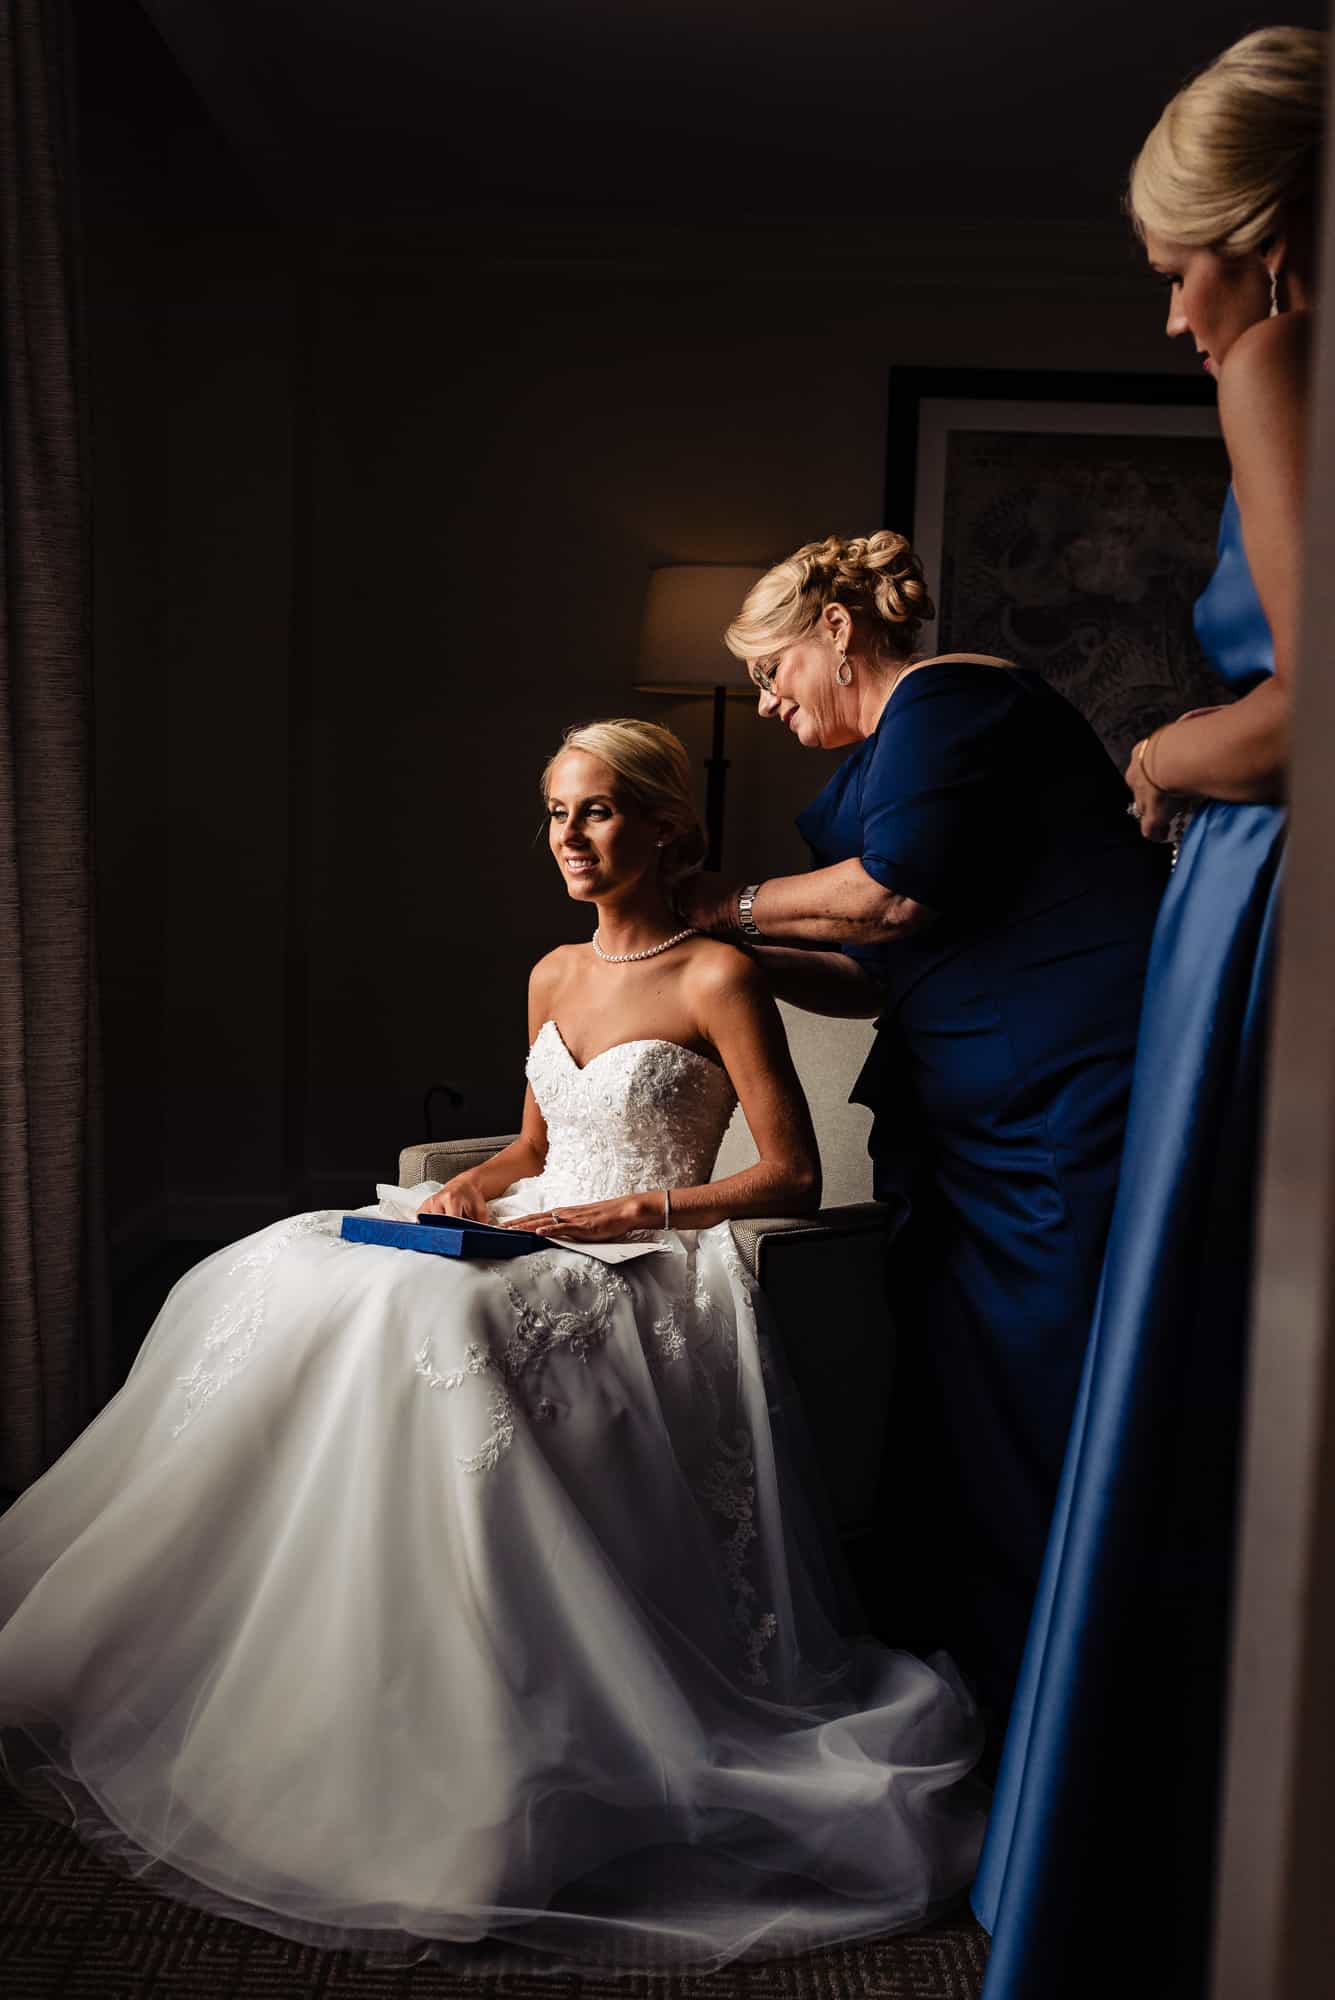 Ritz Carlton Philadelphia Wedding|mother of the bride putting necklace on bride